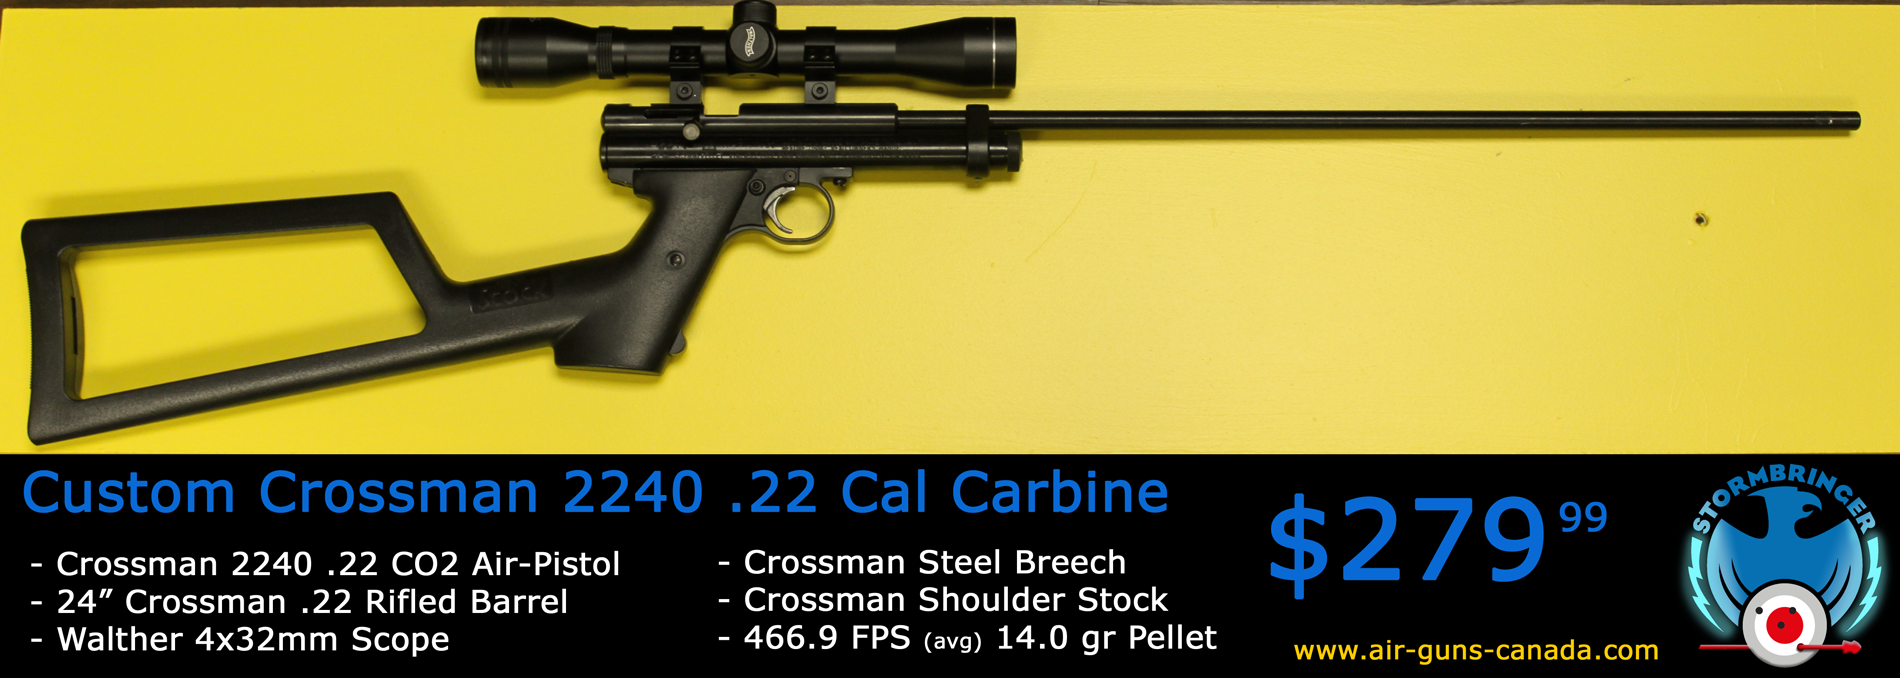 Crosman 2240 Carbine. Featuring a Crosman steel breech